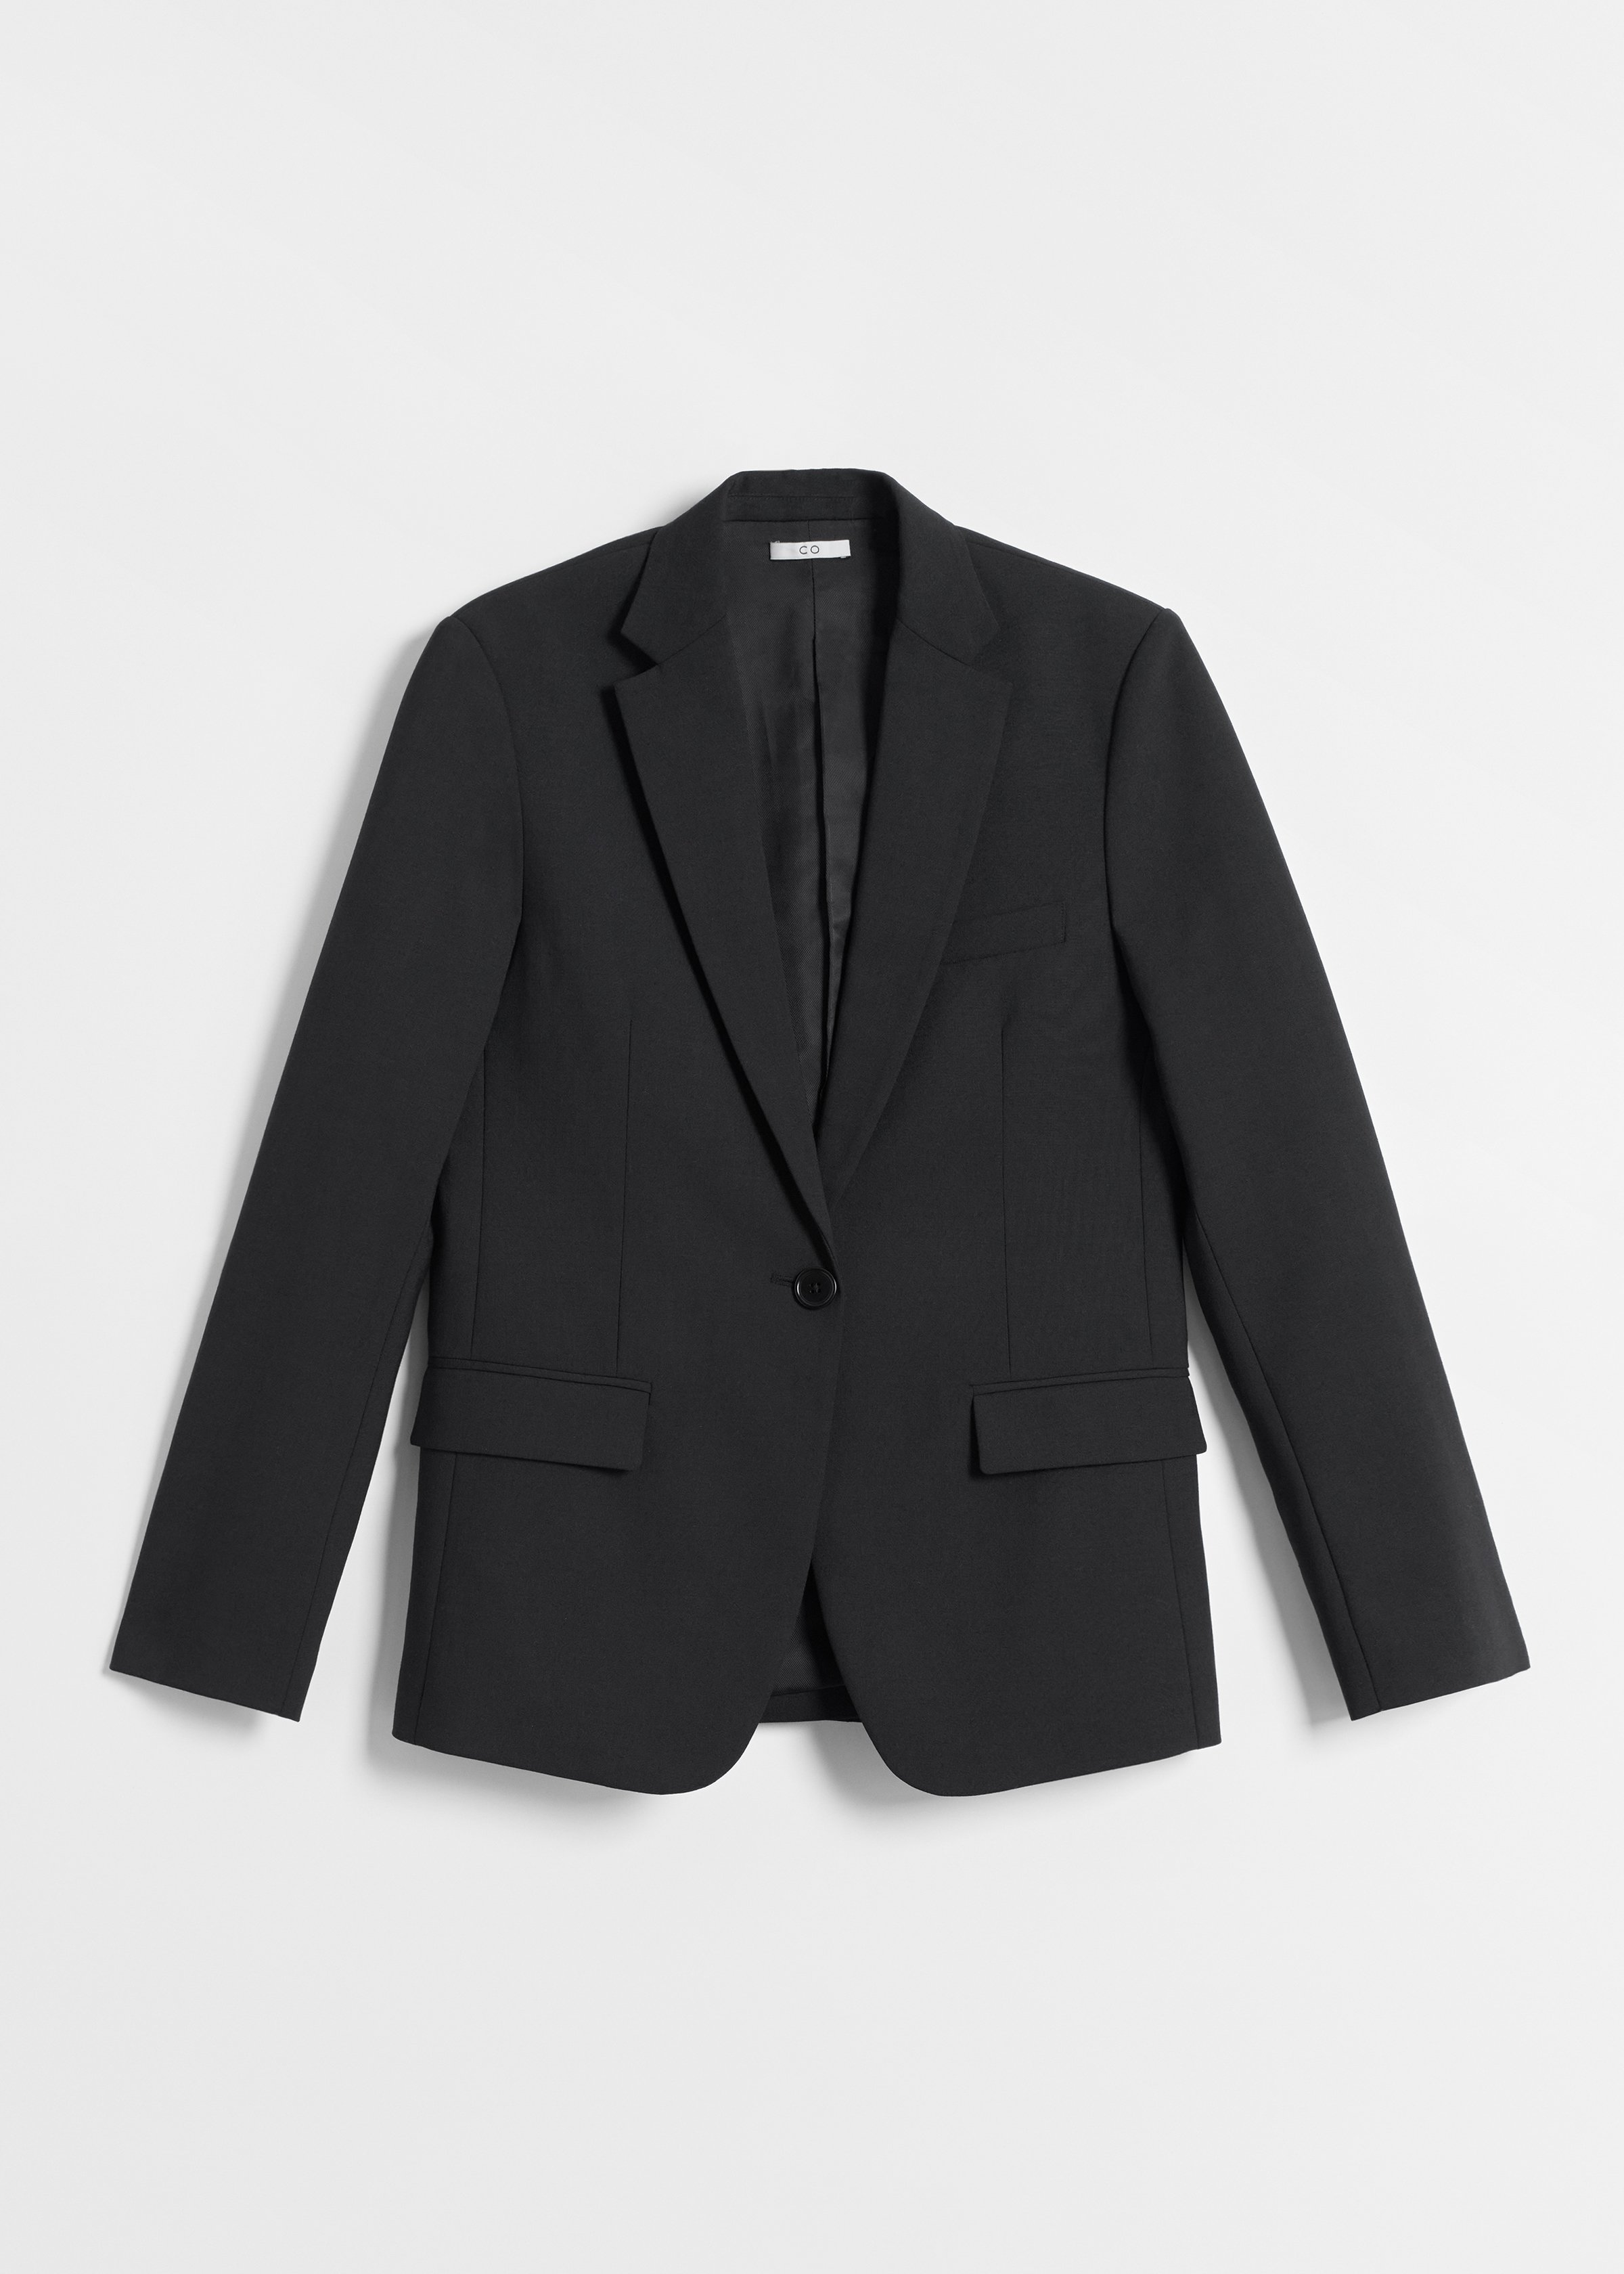 Tailored Blazer in Wool Suiting - Black - CO